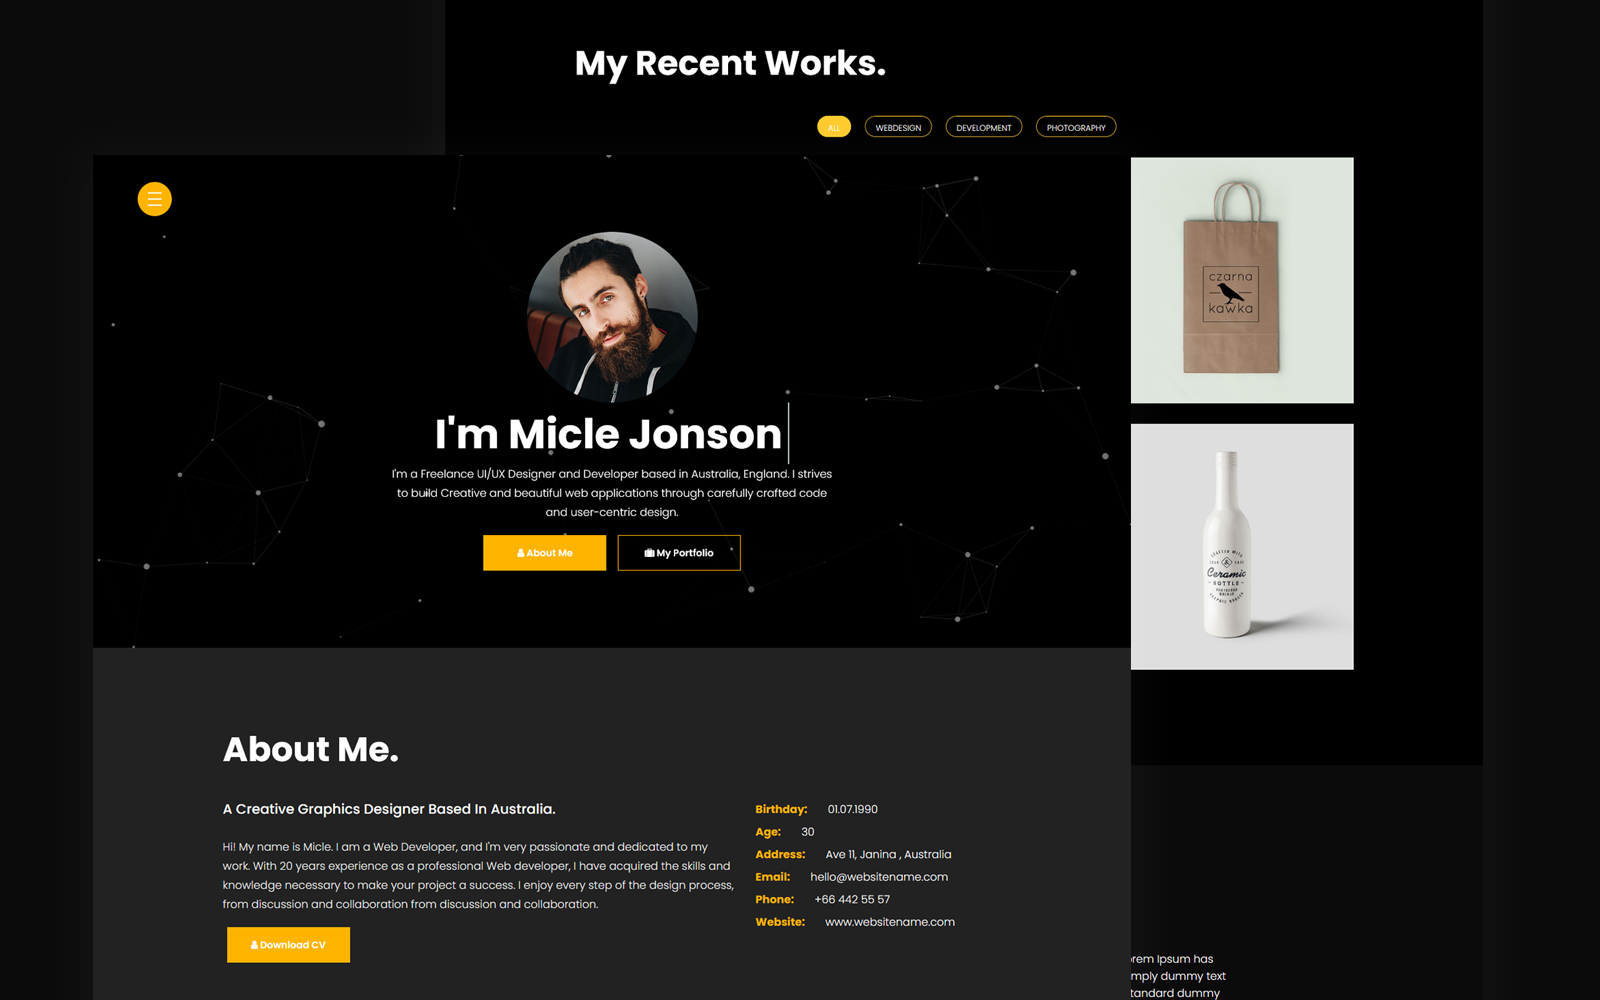 Micle - Personal Portfolio/Resume Landing Page Template